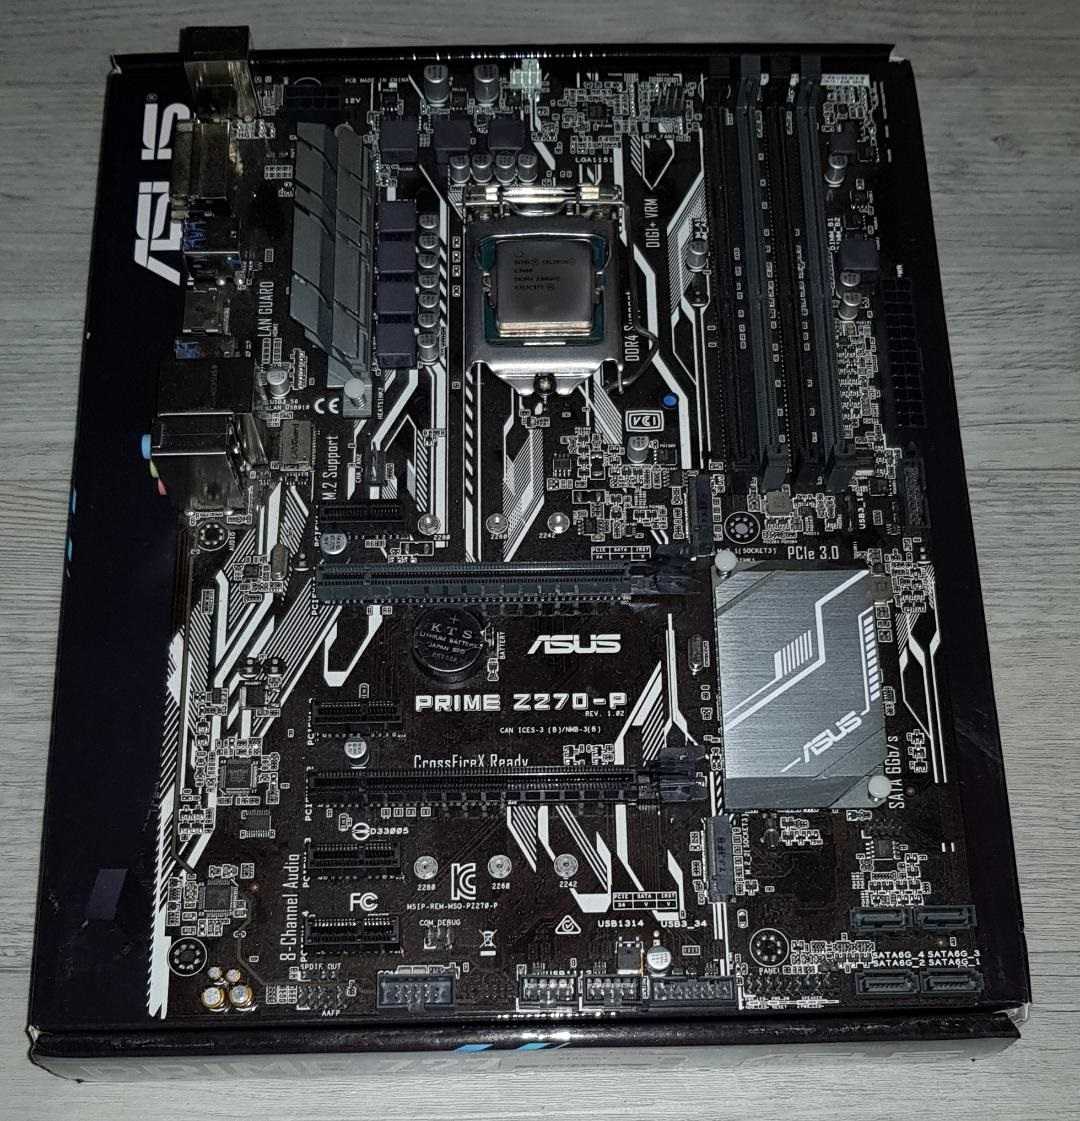 Mickey: Asus Owners Club [IMG]